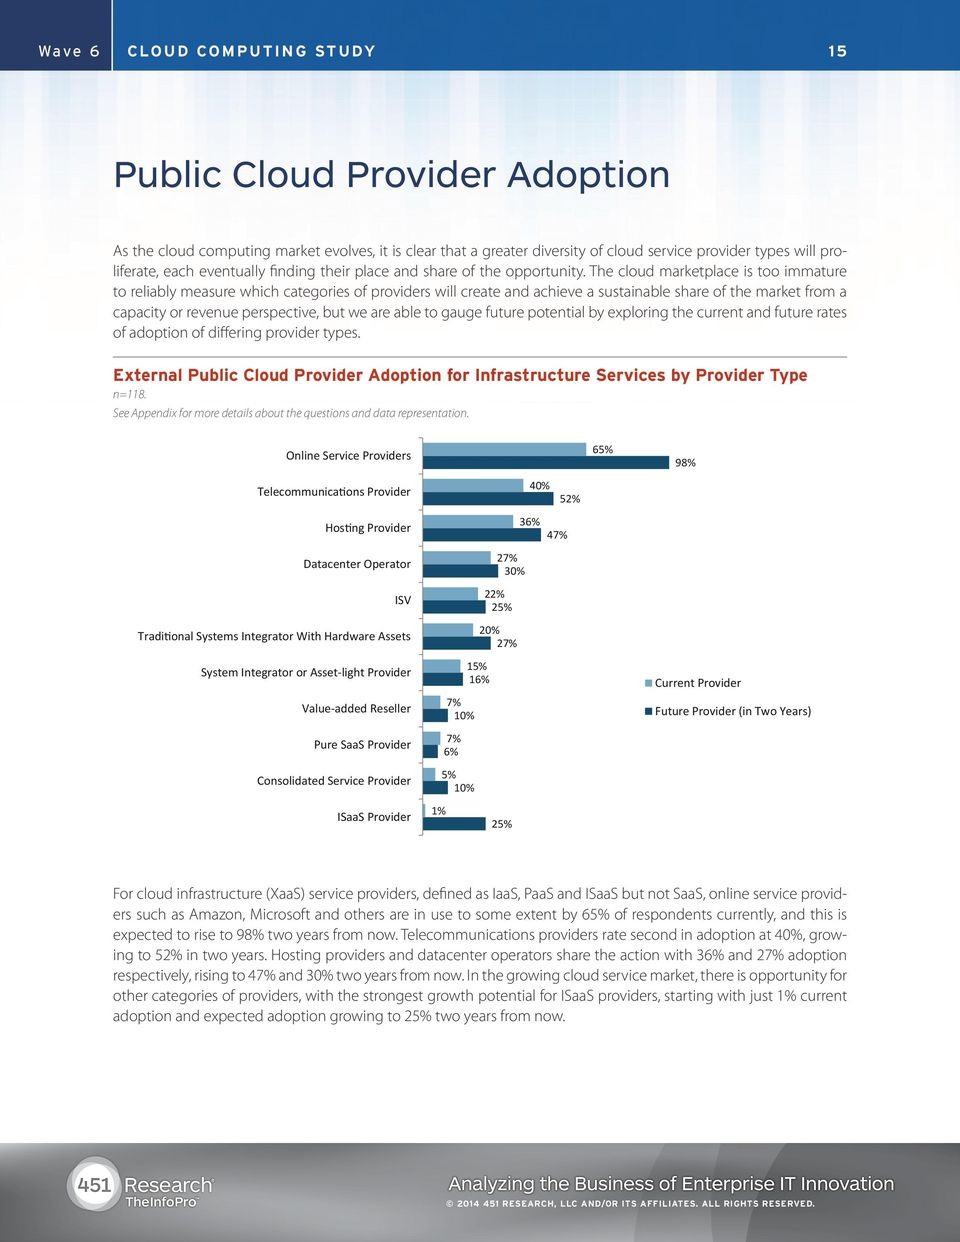 The cloud marketplace is too immature to reliably measure which categories of providers will create and achieve a sustainable share of the market from a capacity or revenue perspective, but we are